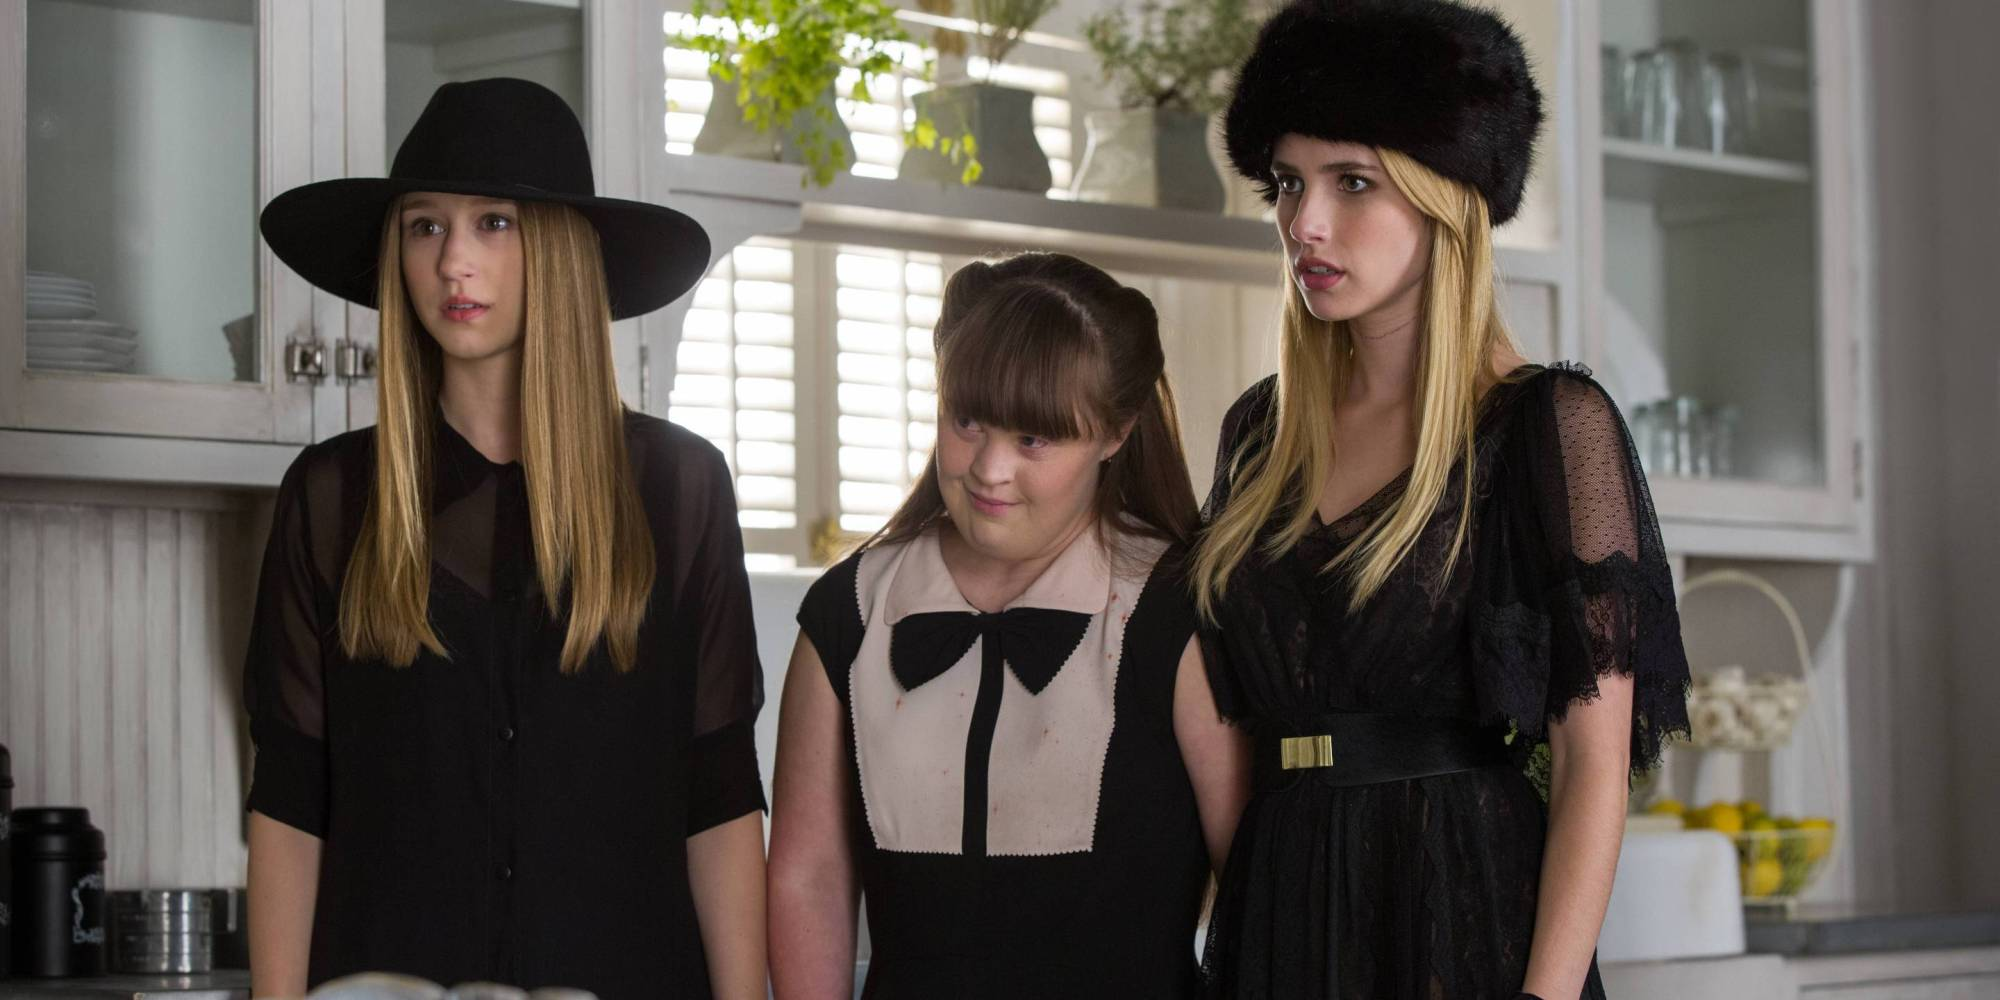 Lou Eyrich Costume Designer Of American Horror Story Gives Us The Scoop On The Show S Killer Looks Hellogiggles